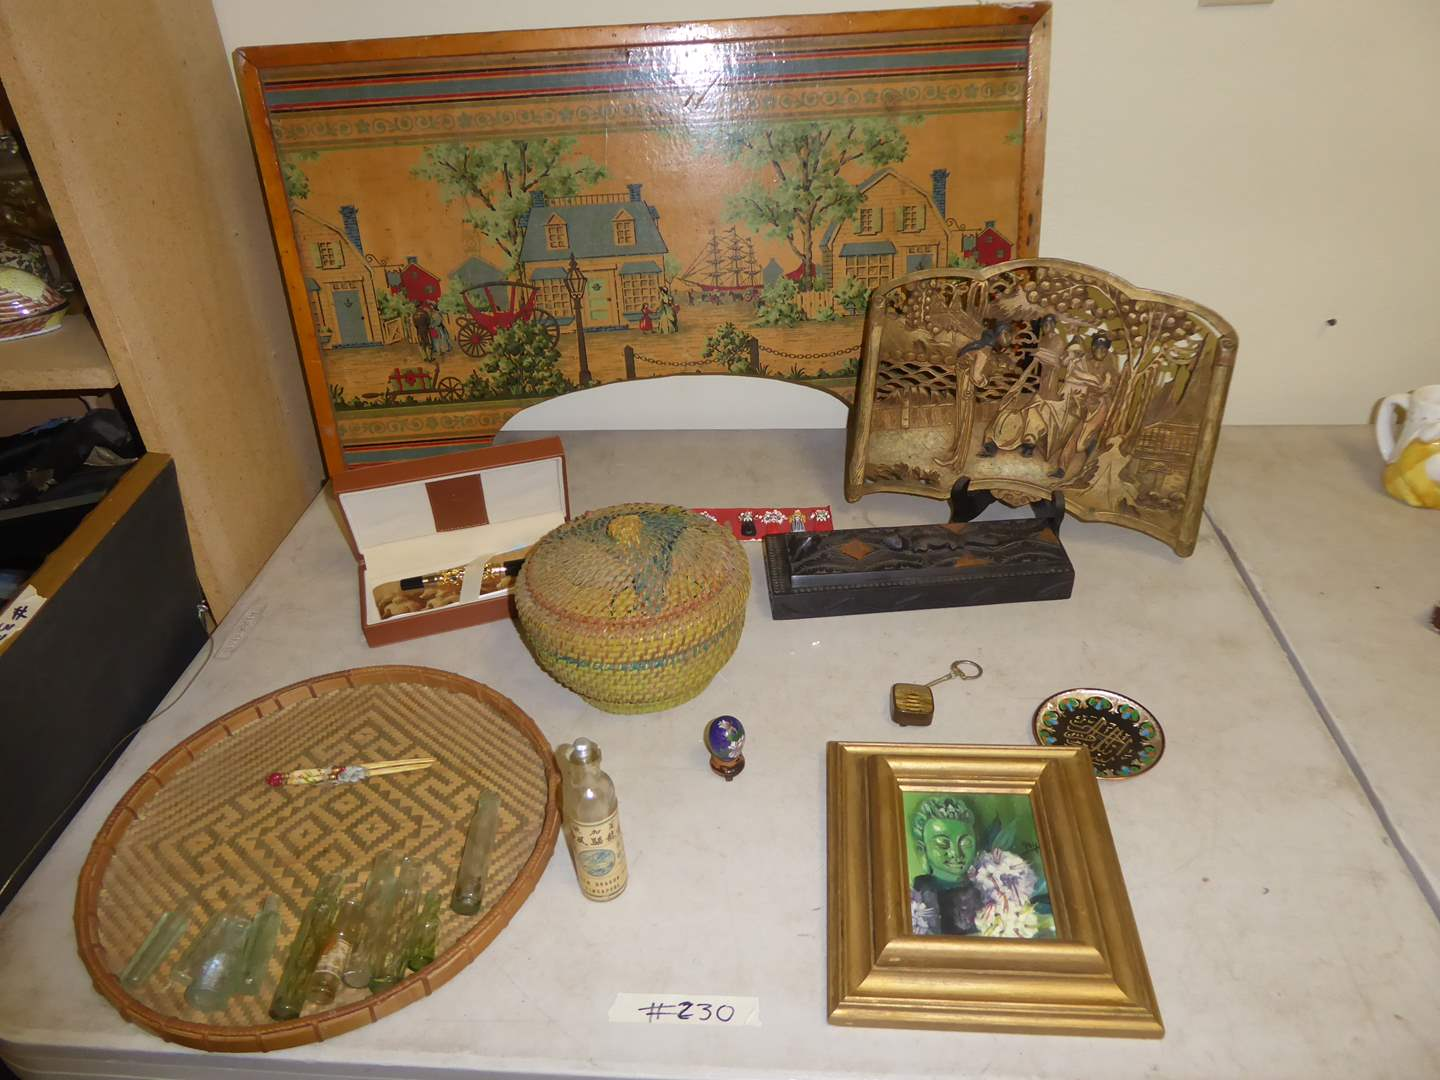 Lot # 230 - Antique Bed Tray Circa:1915, Original Oil Painting, Snuff Bottle & Chinese Medicine Bottles  (main image)